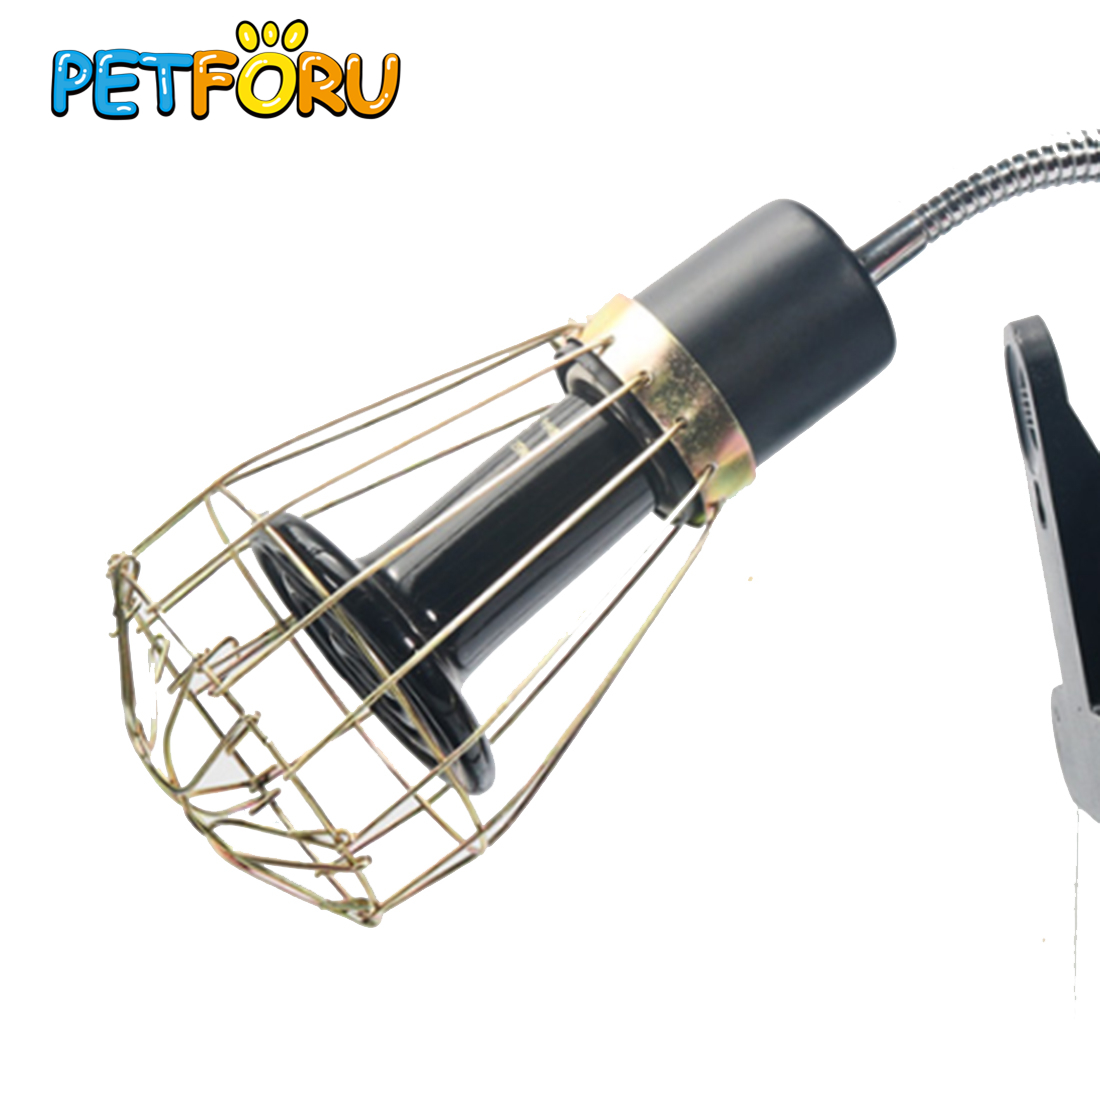 PETFORU Vintage Wire Lamp Cage Anti-scald Wire Light Lampshade Reptile Feeding Box Protective Lamp Cage Nordic Bulb Cover-Metal